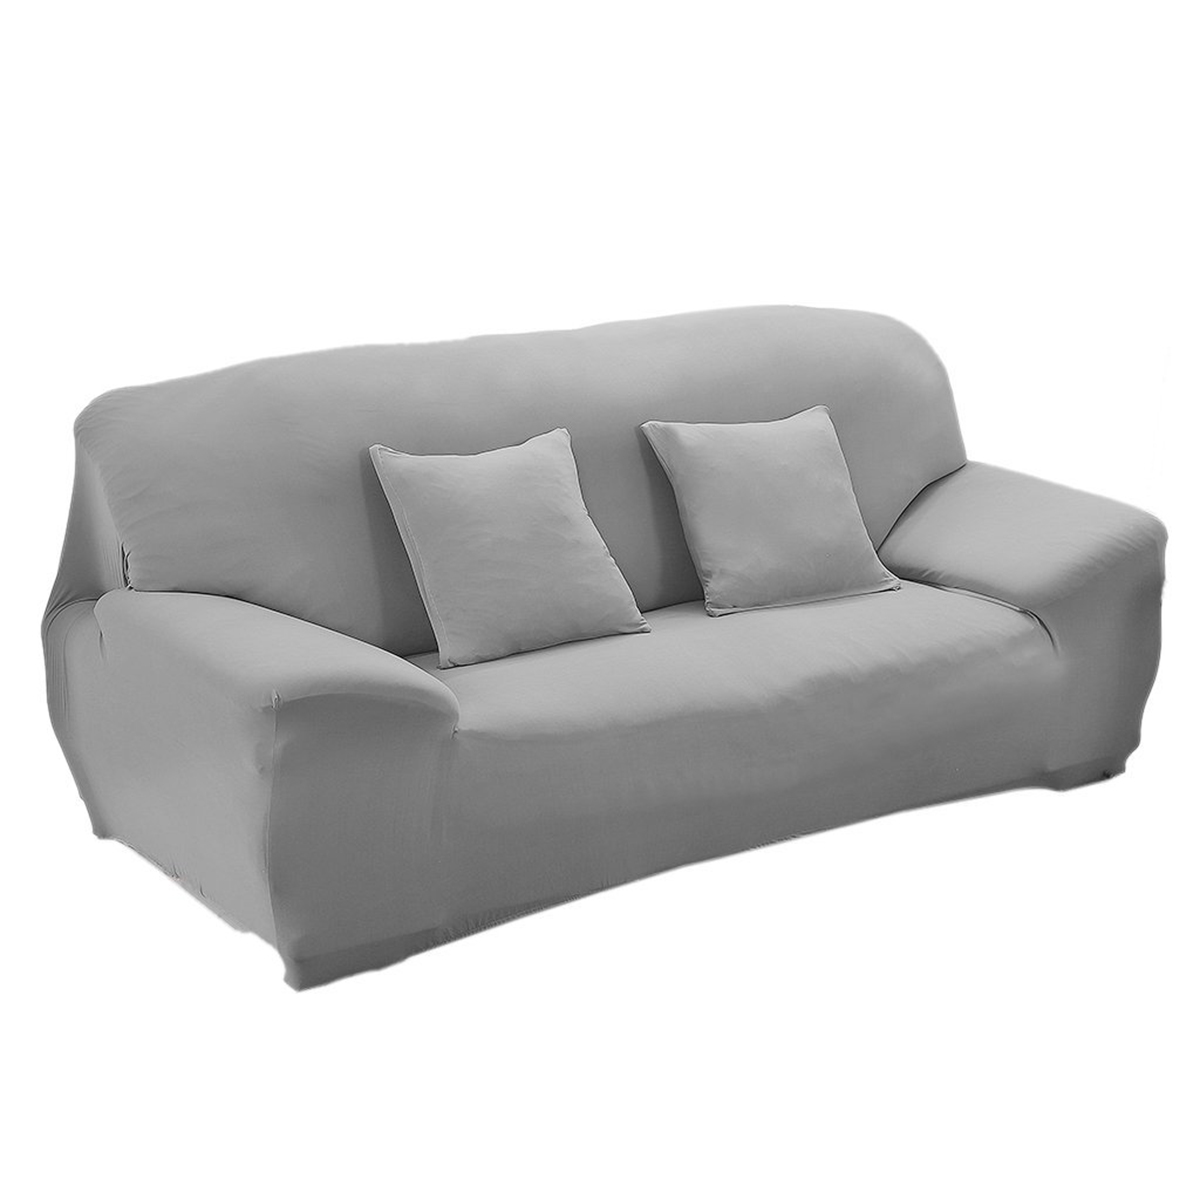 Online Get Cheap Sofa Chair Slipcover Aliexpresscom Alibaba Group